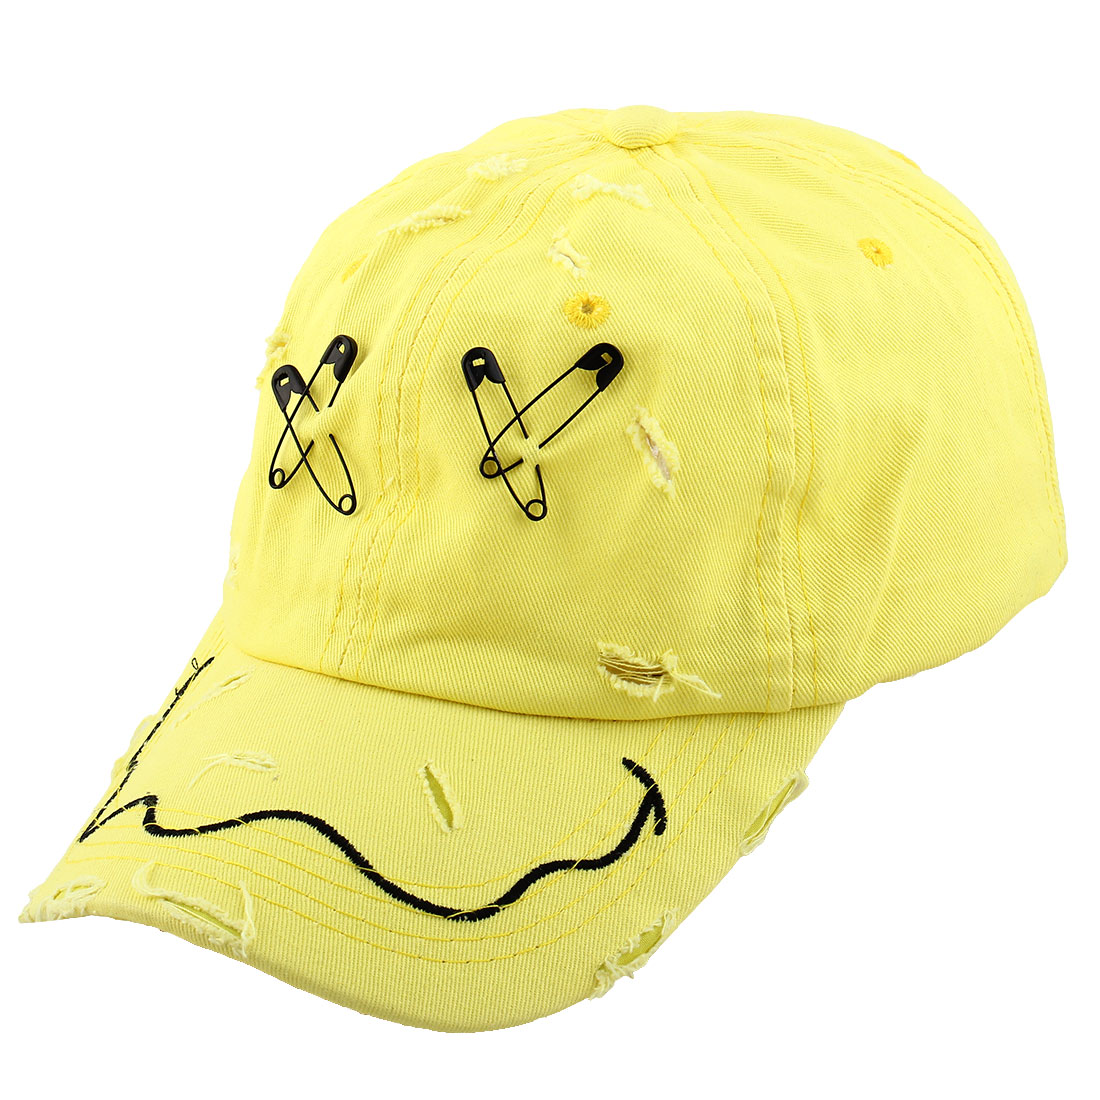 Unisex Metal X Letter Decor Outdoor Sports Golf Adjustable Baseball Peaked Hat Cap Yellow